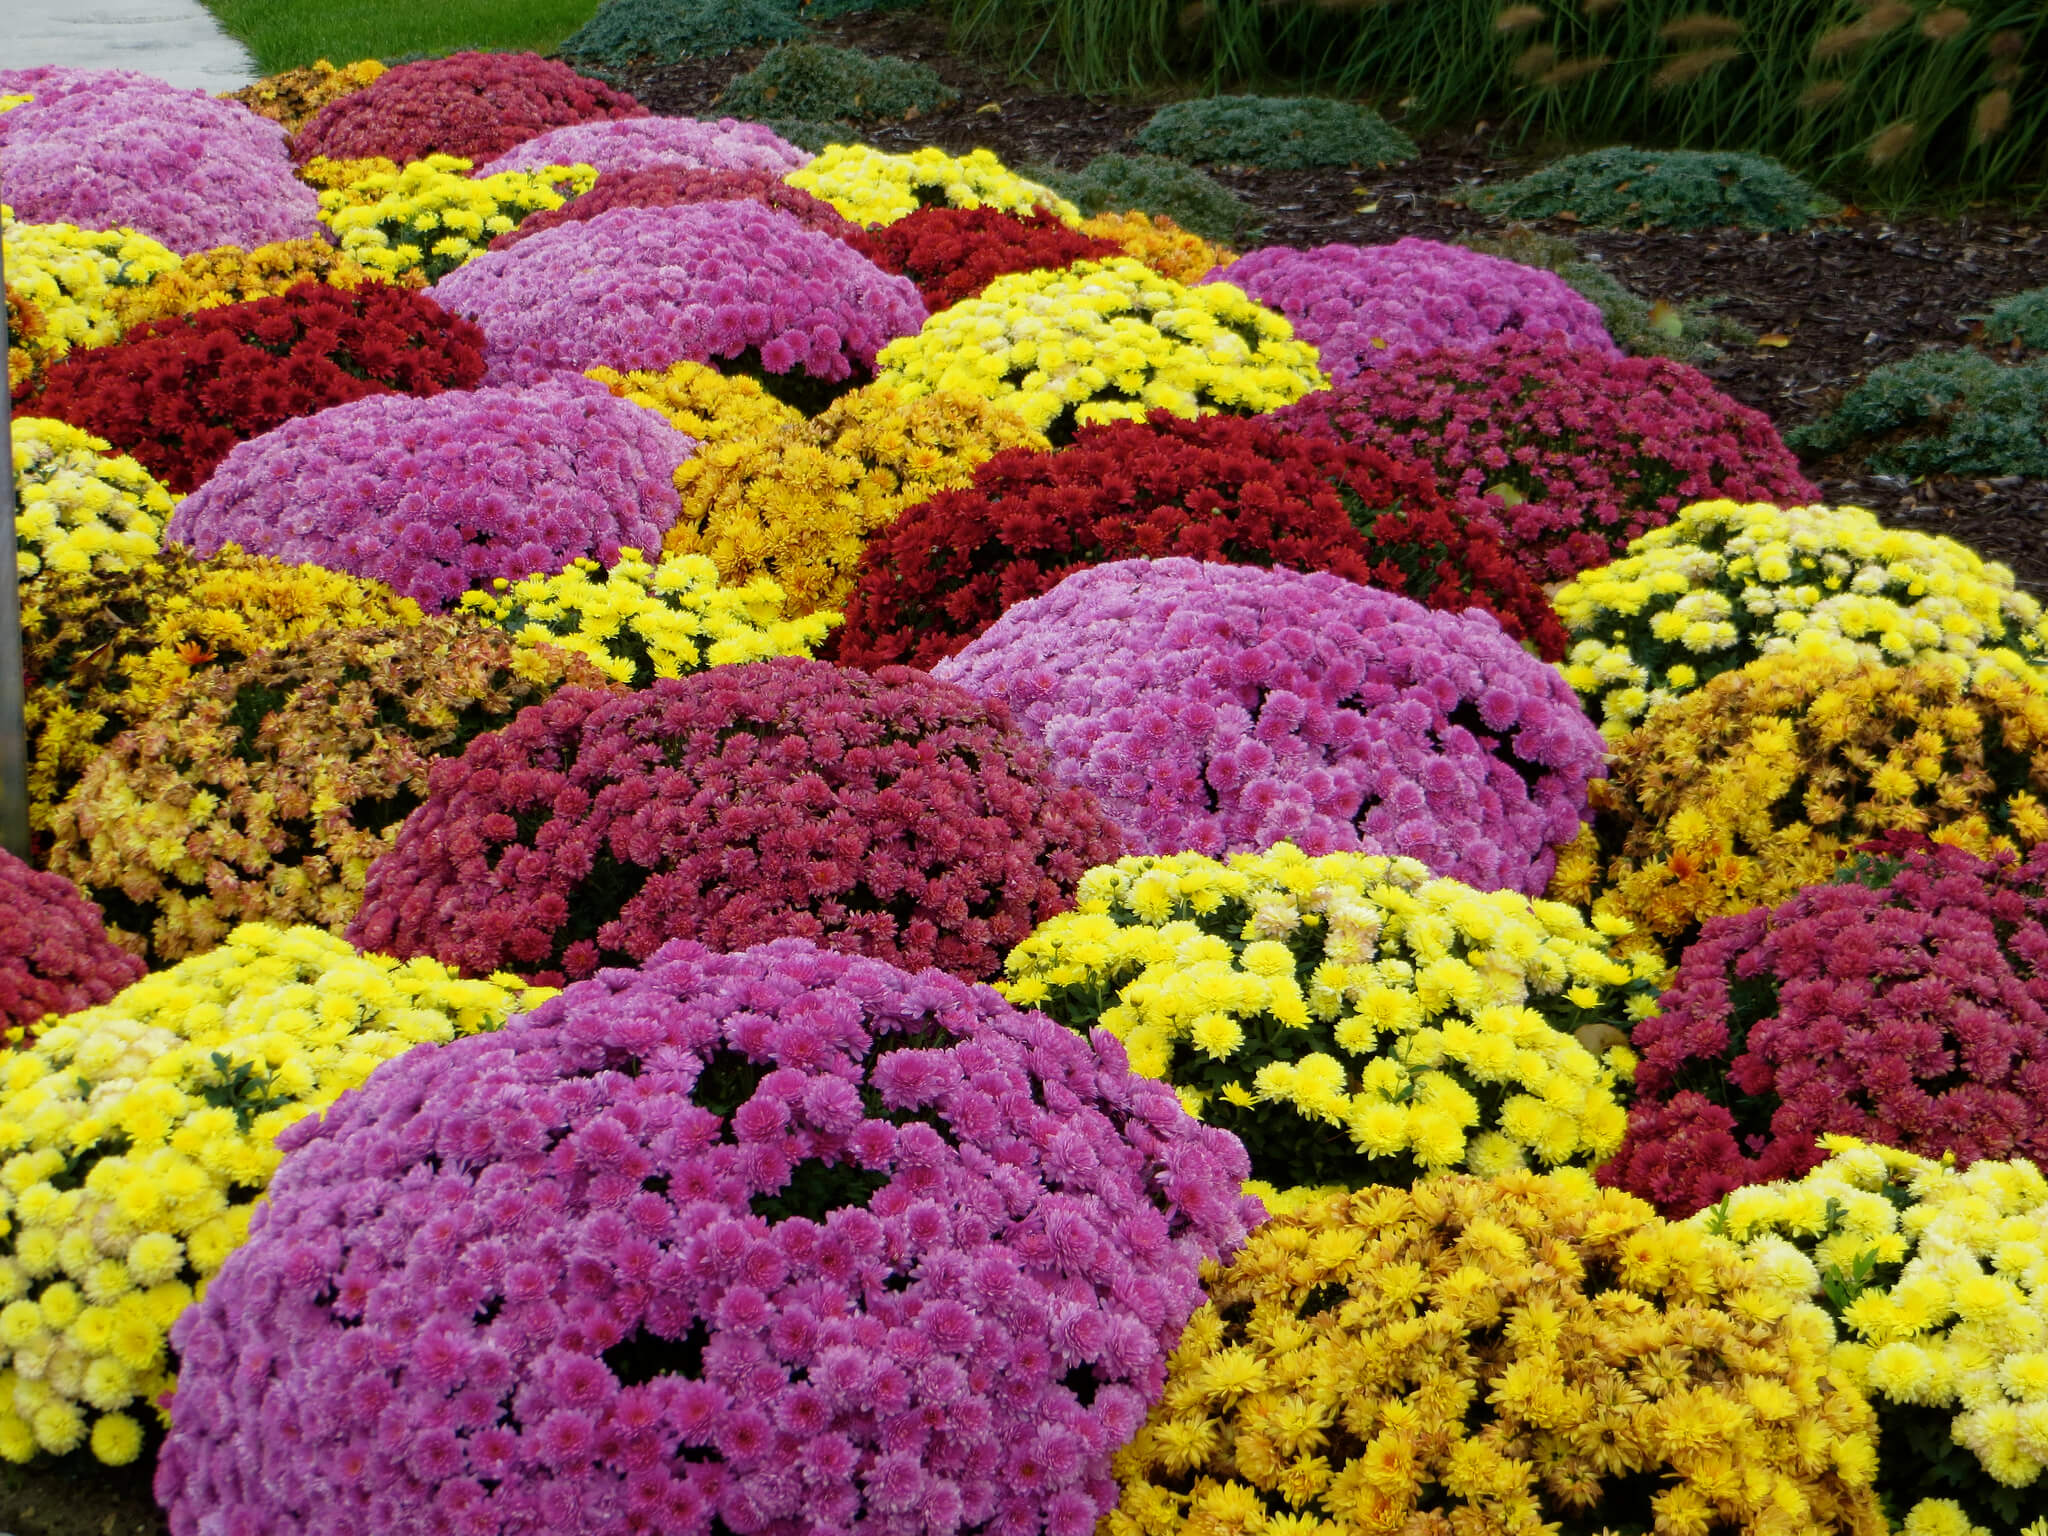 Planting fall mums in georgia gardens colorful mums in bloom izmirmasajfo